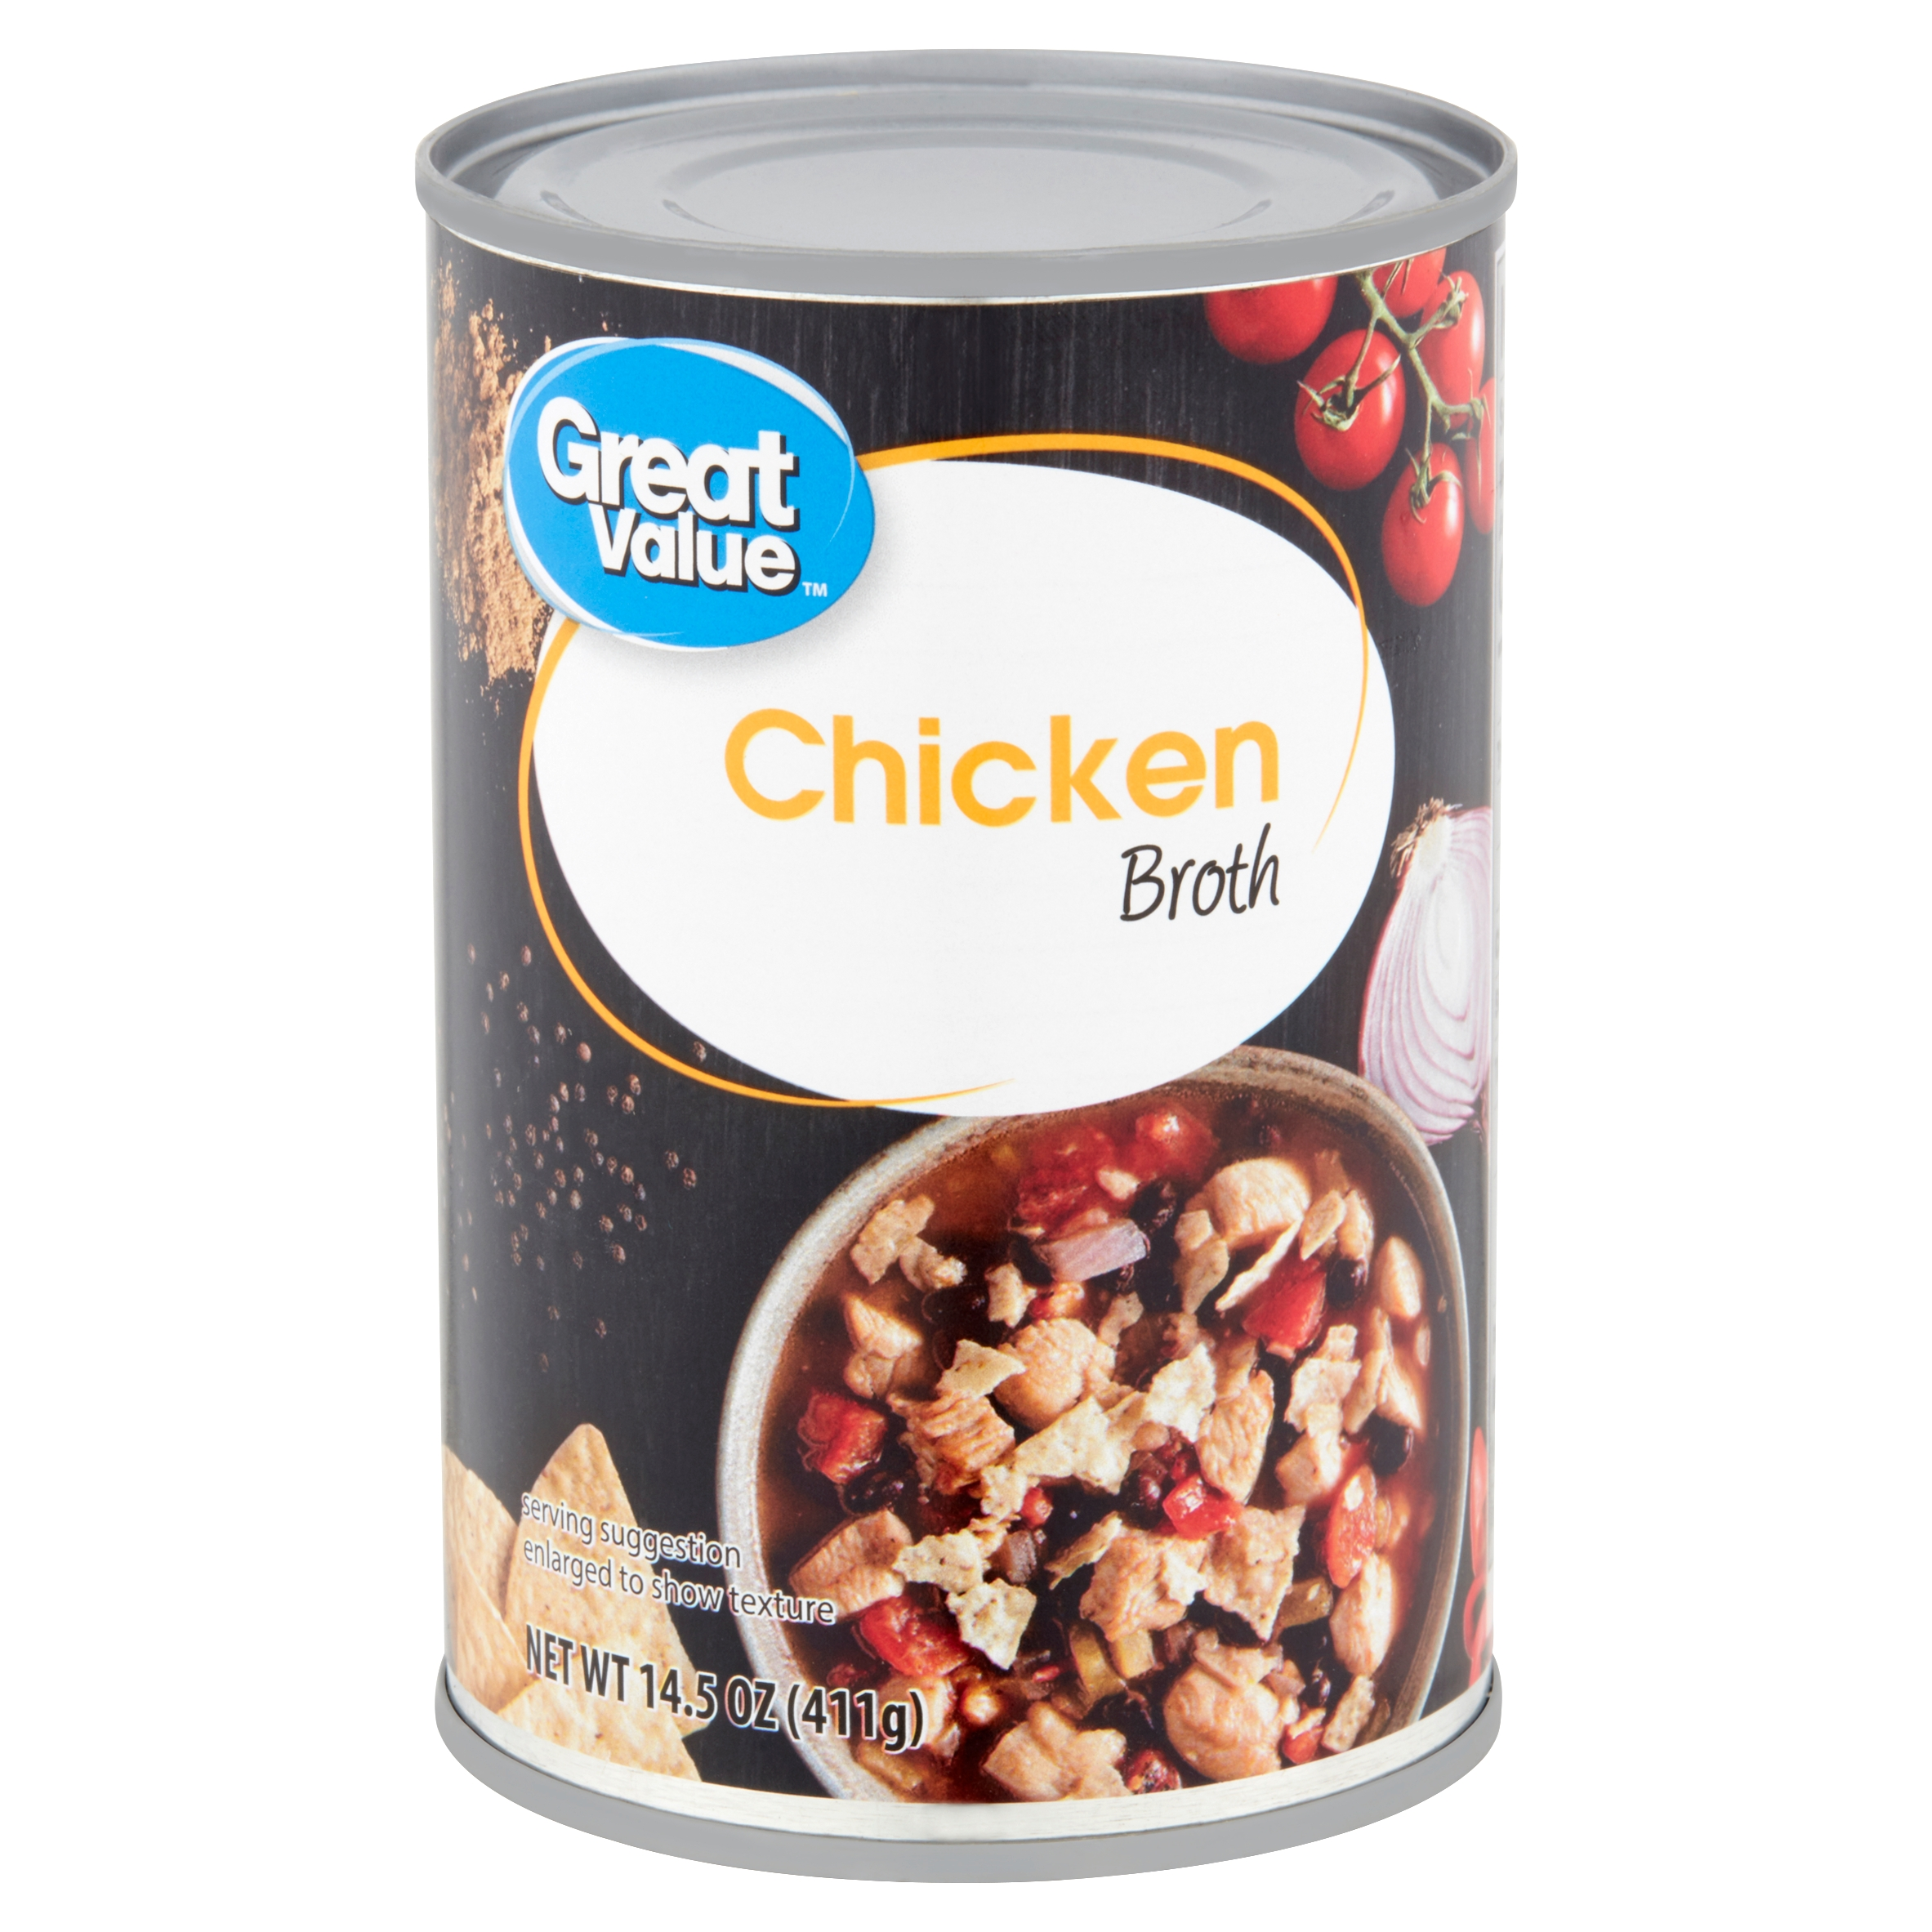 (3 Pack) Great Value Chicken Broth, 14.5 oz